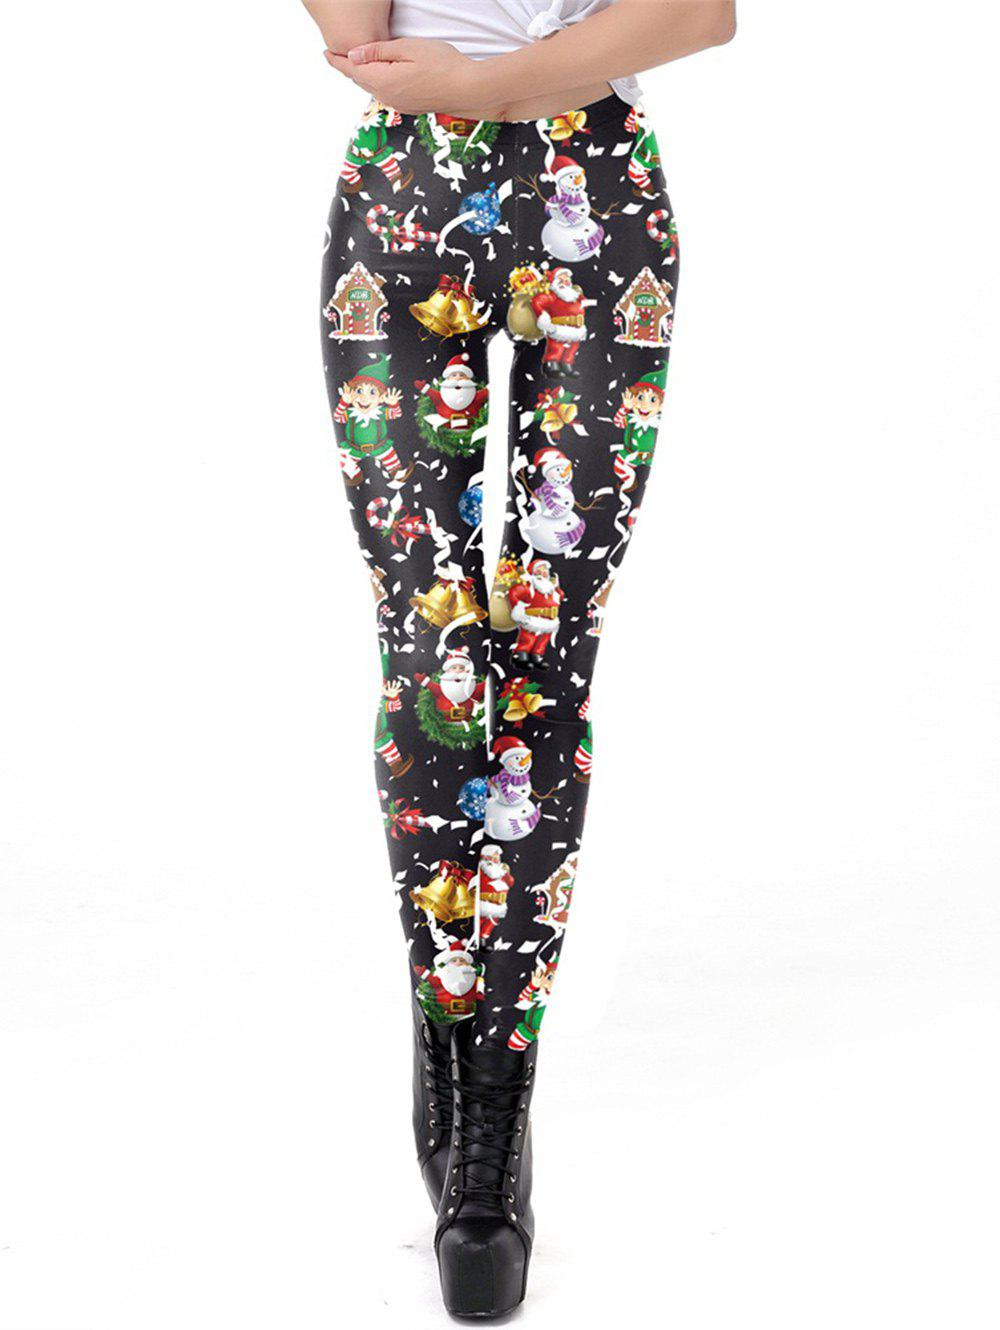 Hot Womens Digital Print Ugly Christmas Stretched Leggings Tights